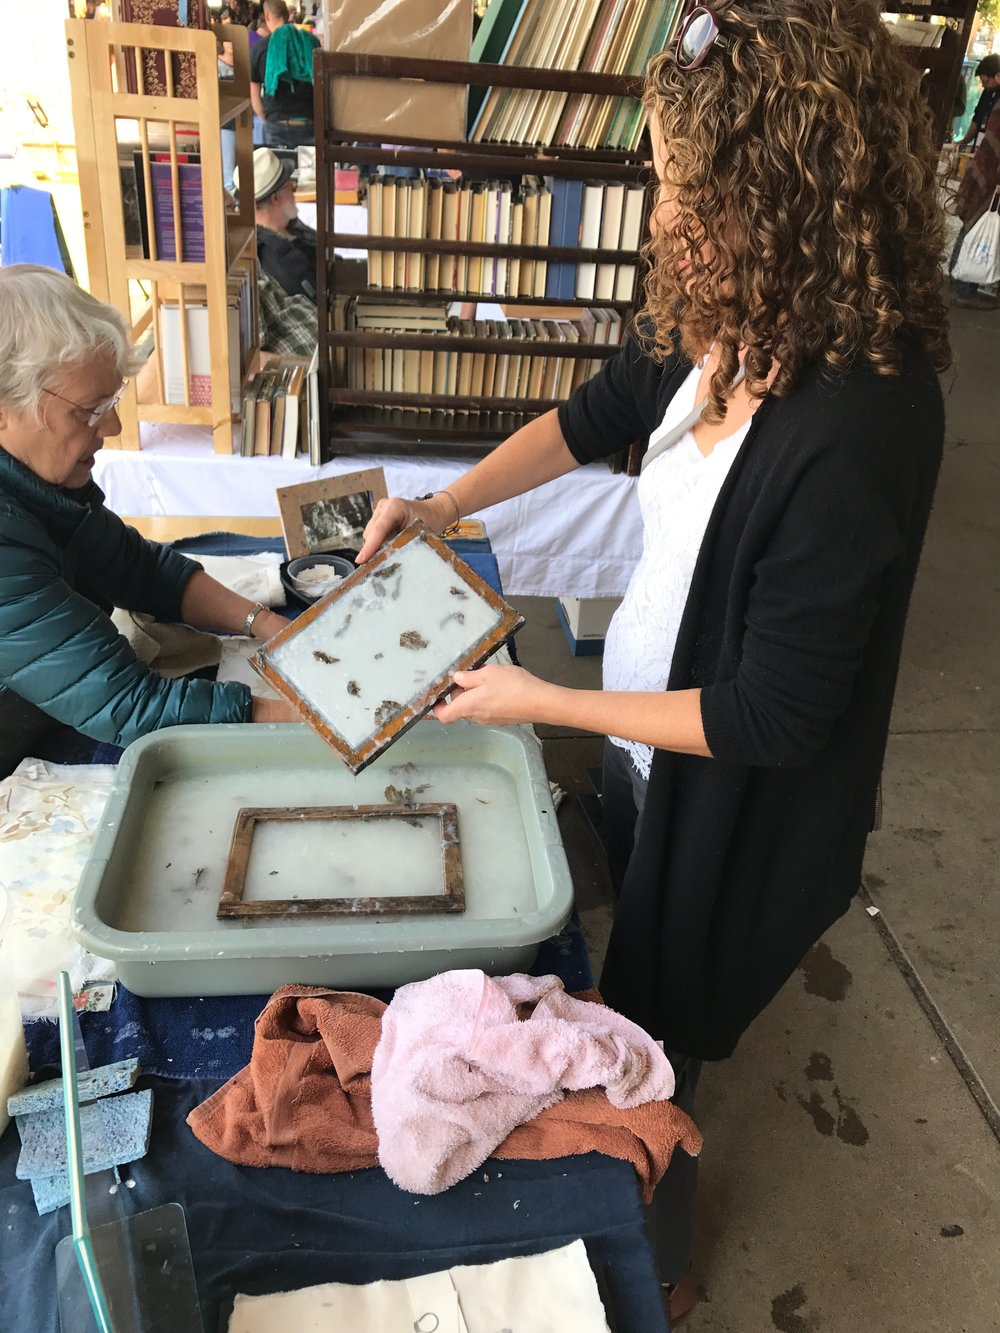 I stopped to look at some beautiful handmade paper and ended up making some myself. Here I am dipping a screen into wet pulp marked with paper wasp's at Karen Koykka O'Neal's Out of Hand Papermaking booth.